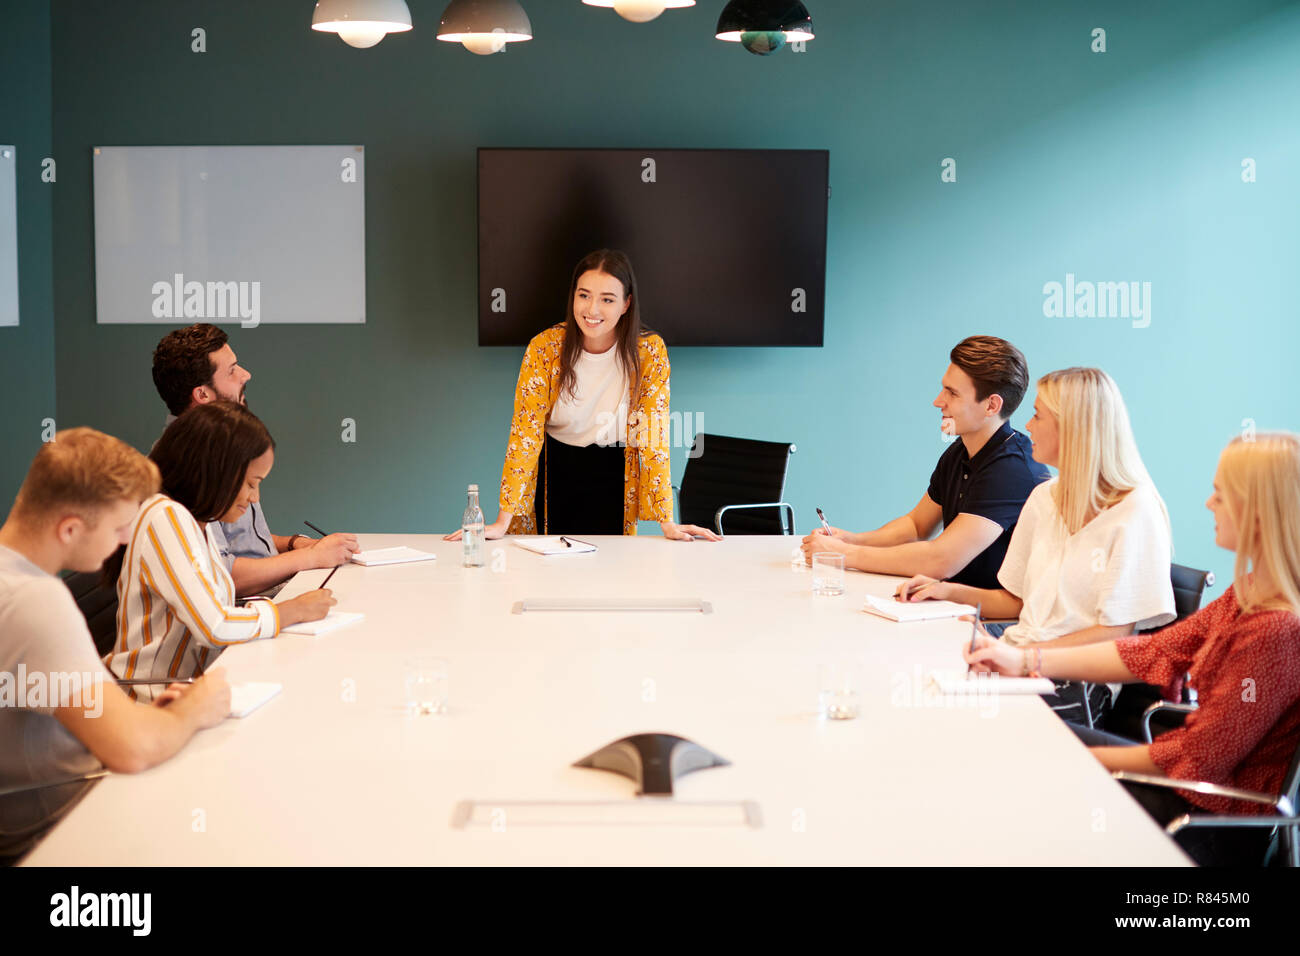 Businesswoman Addressing Group Of Candidates Meeting Around Table At Graduate Recruitment Assessment Day - Stock Image